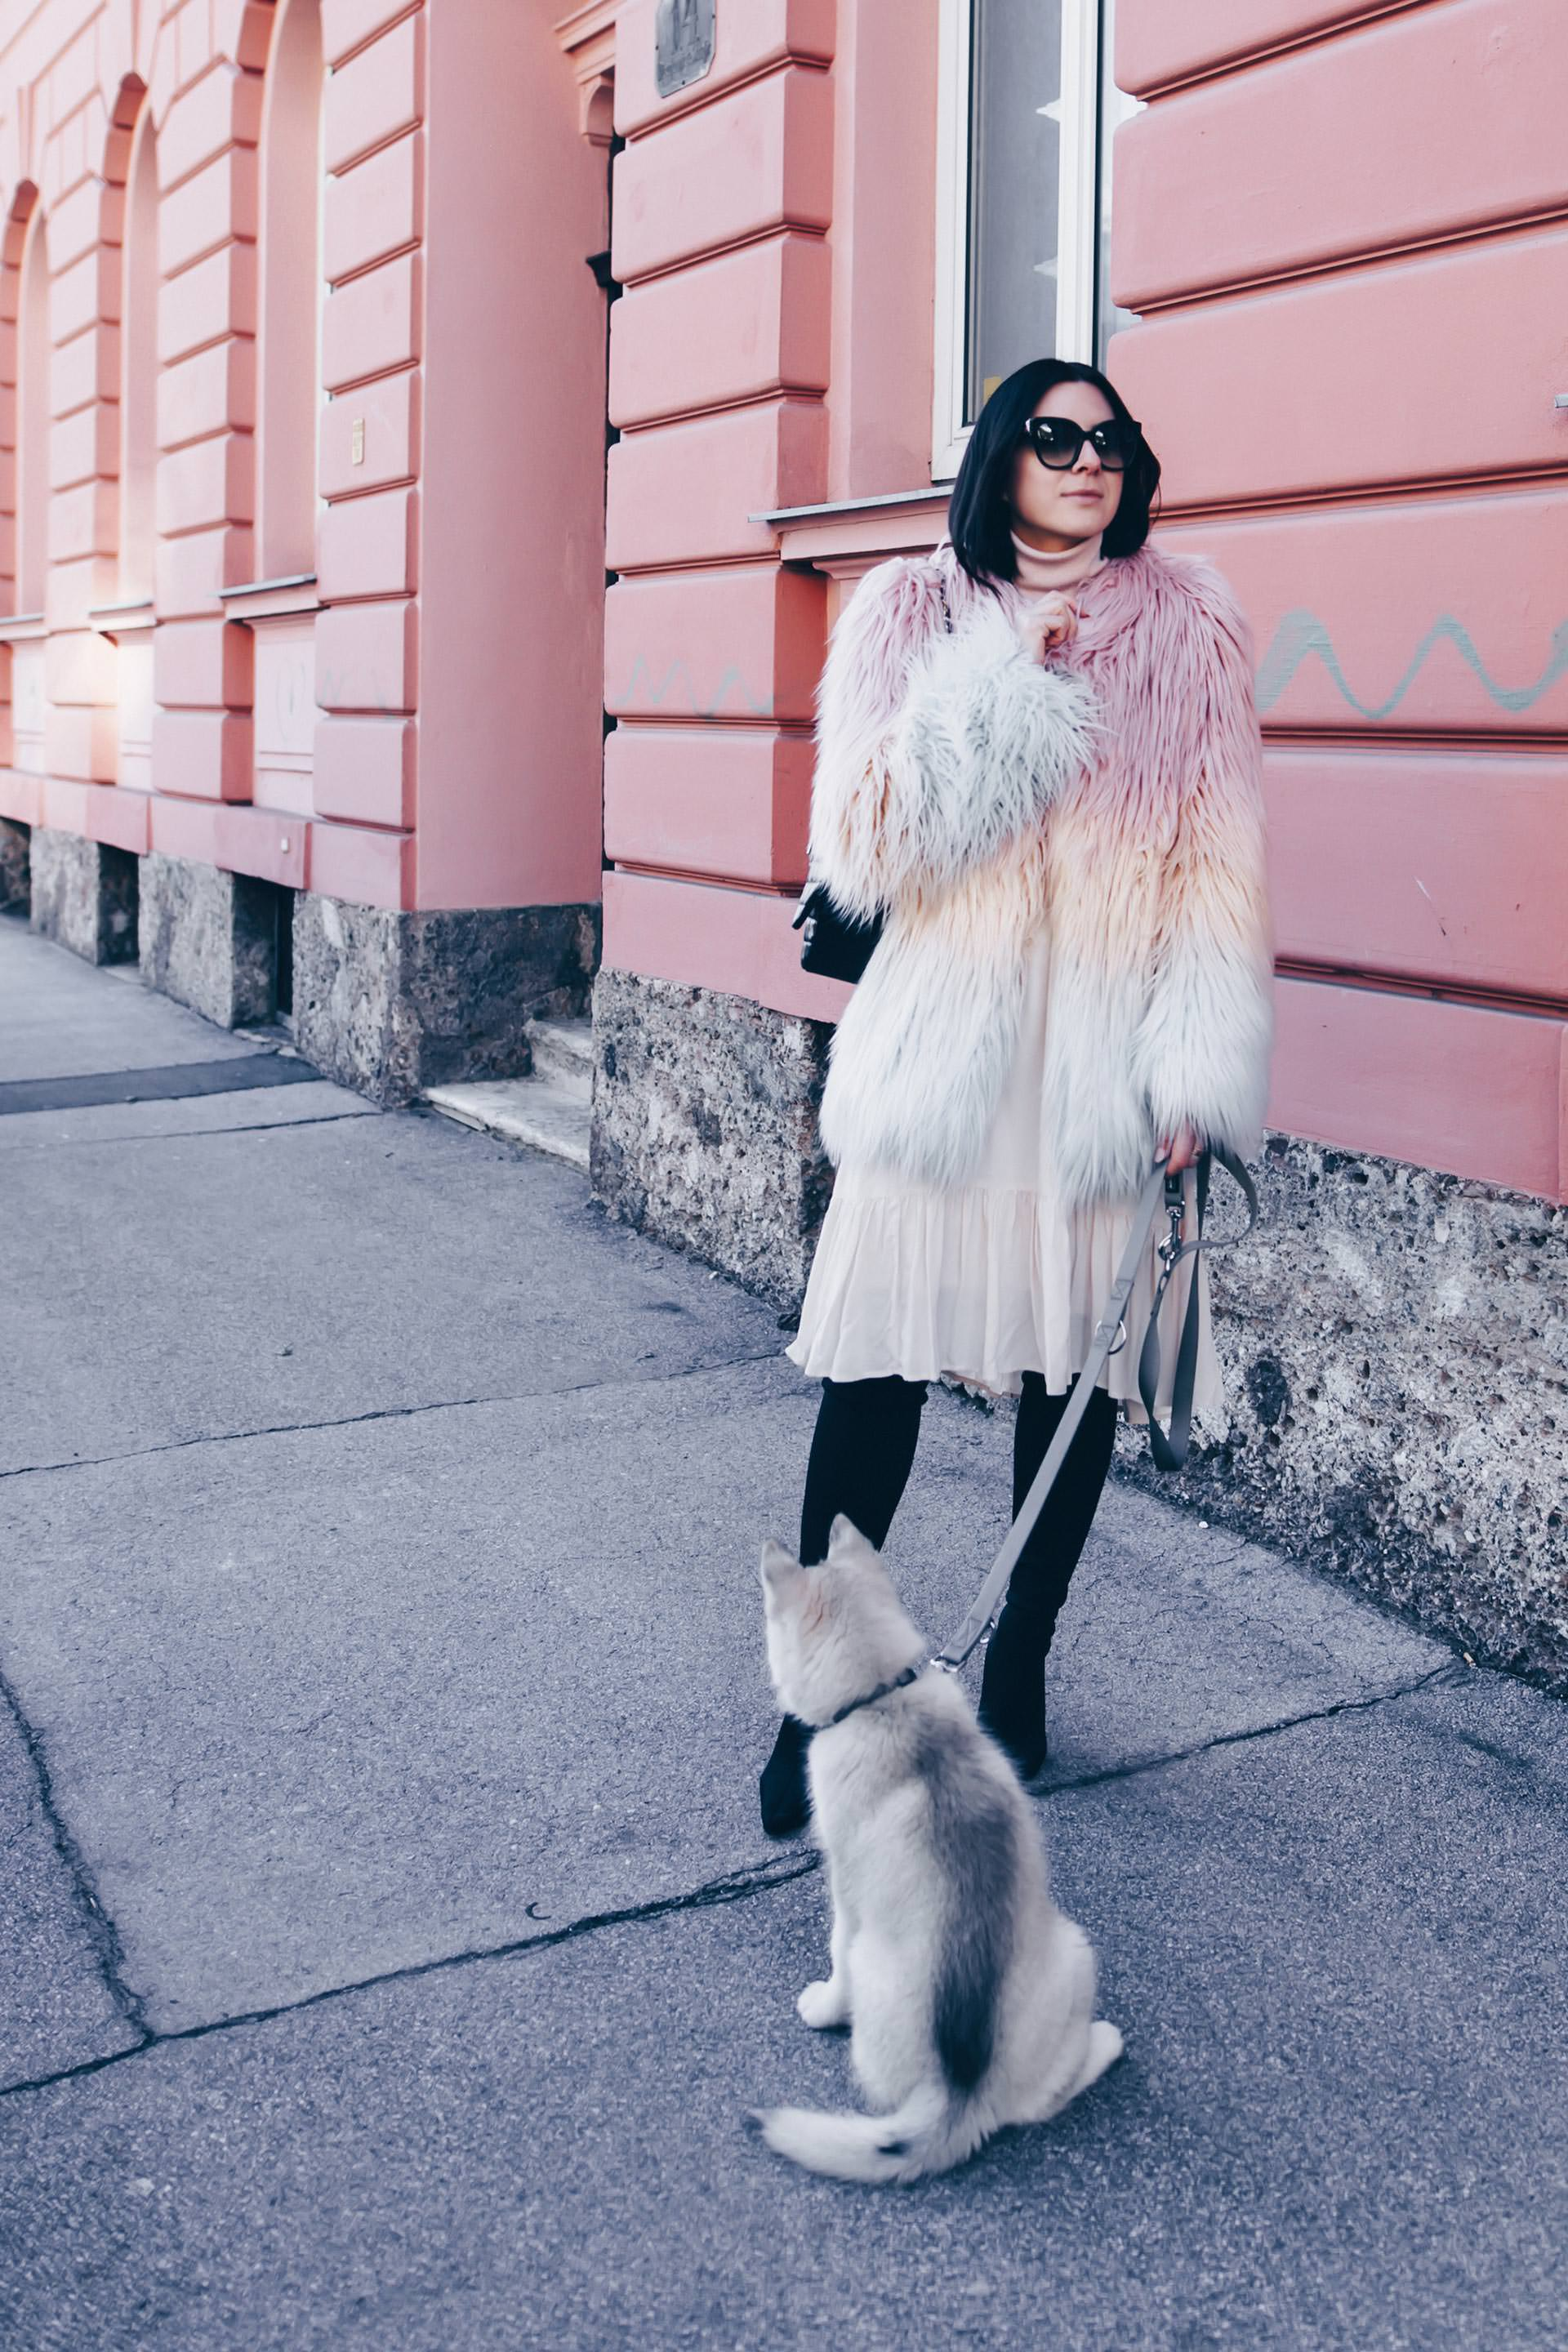 Pastell Outfit im Winter kombinieren, Layering im Winter, Lagenlook mit Pastell, Overknee Sock Boots, Quilted Double Flap Bag gold Chains, Fashion Blog, Streetstyle, Fake Fur Mantel, www.whoismocca.com